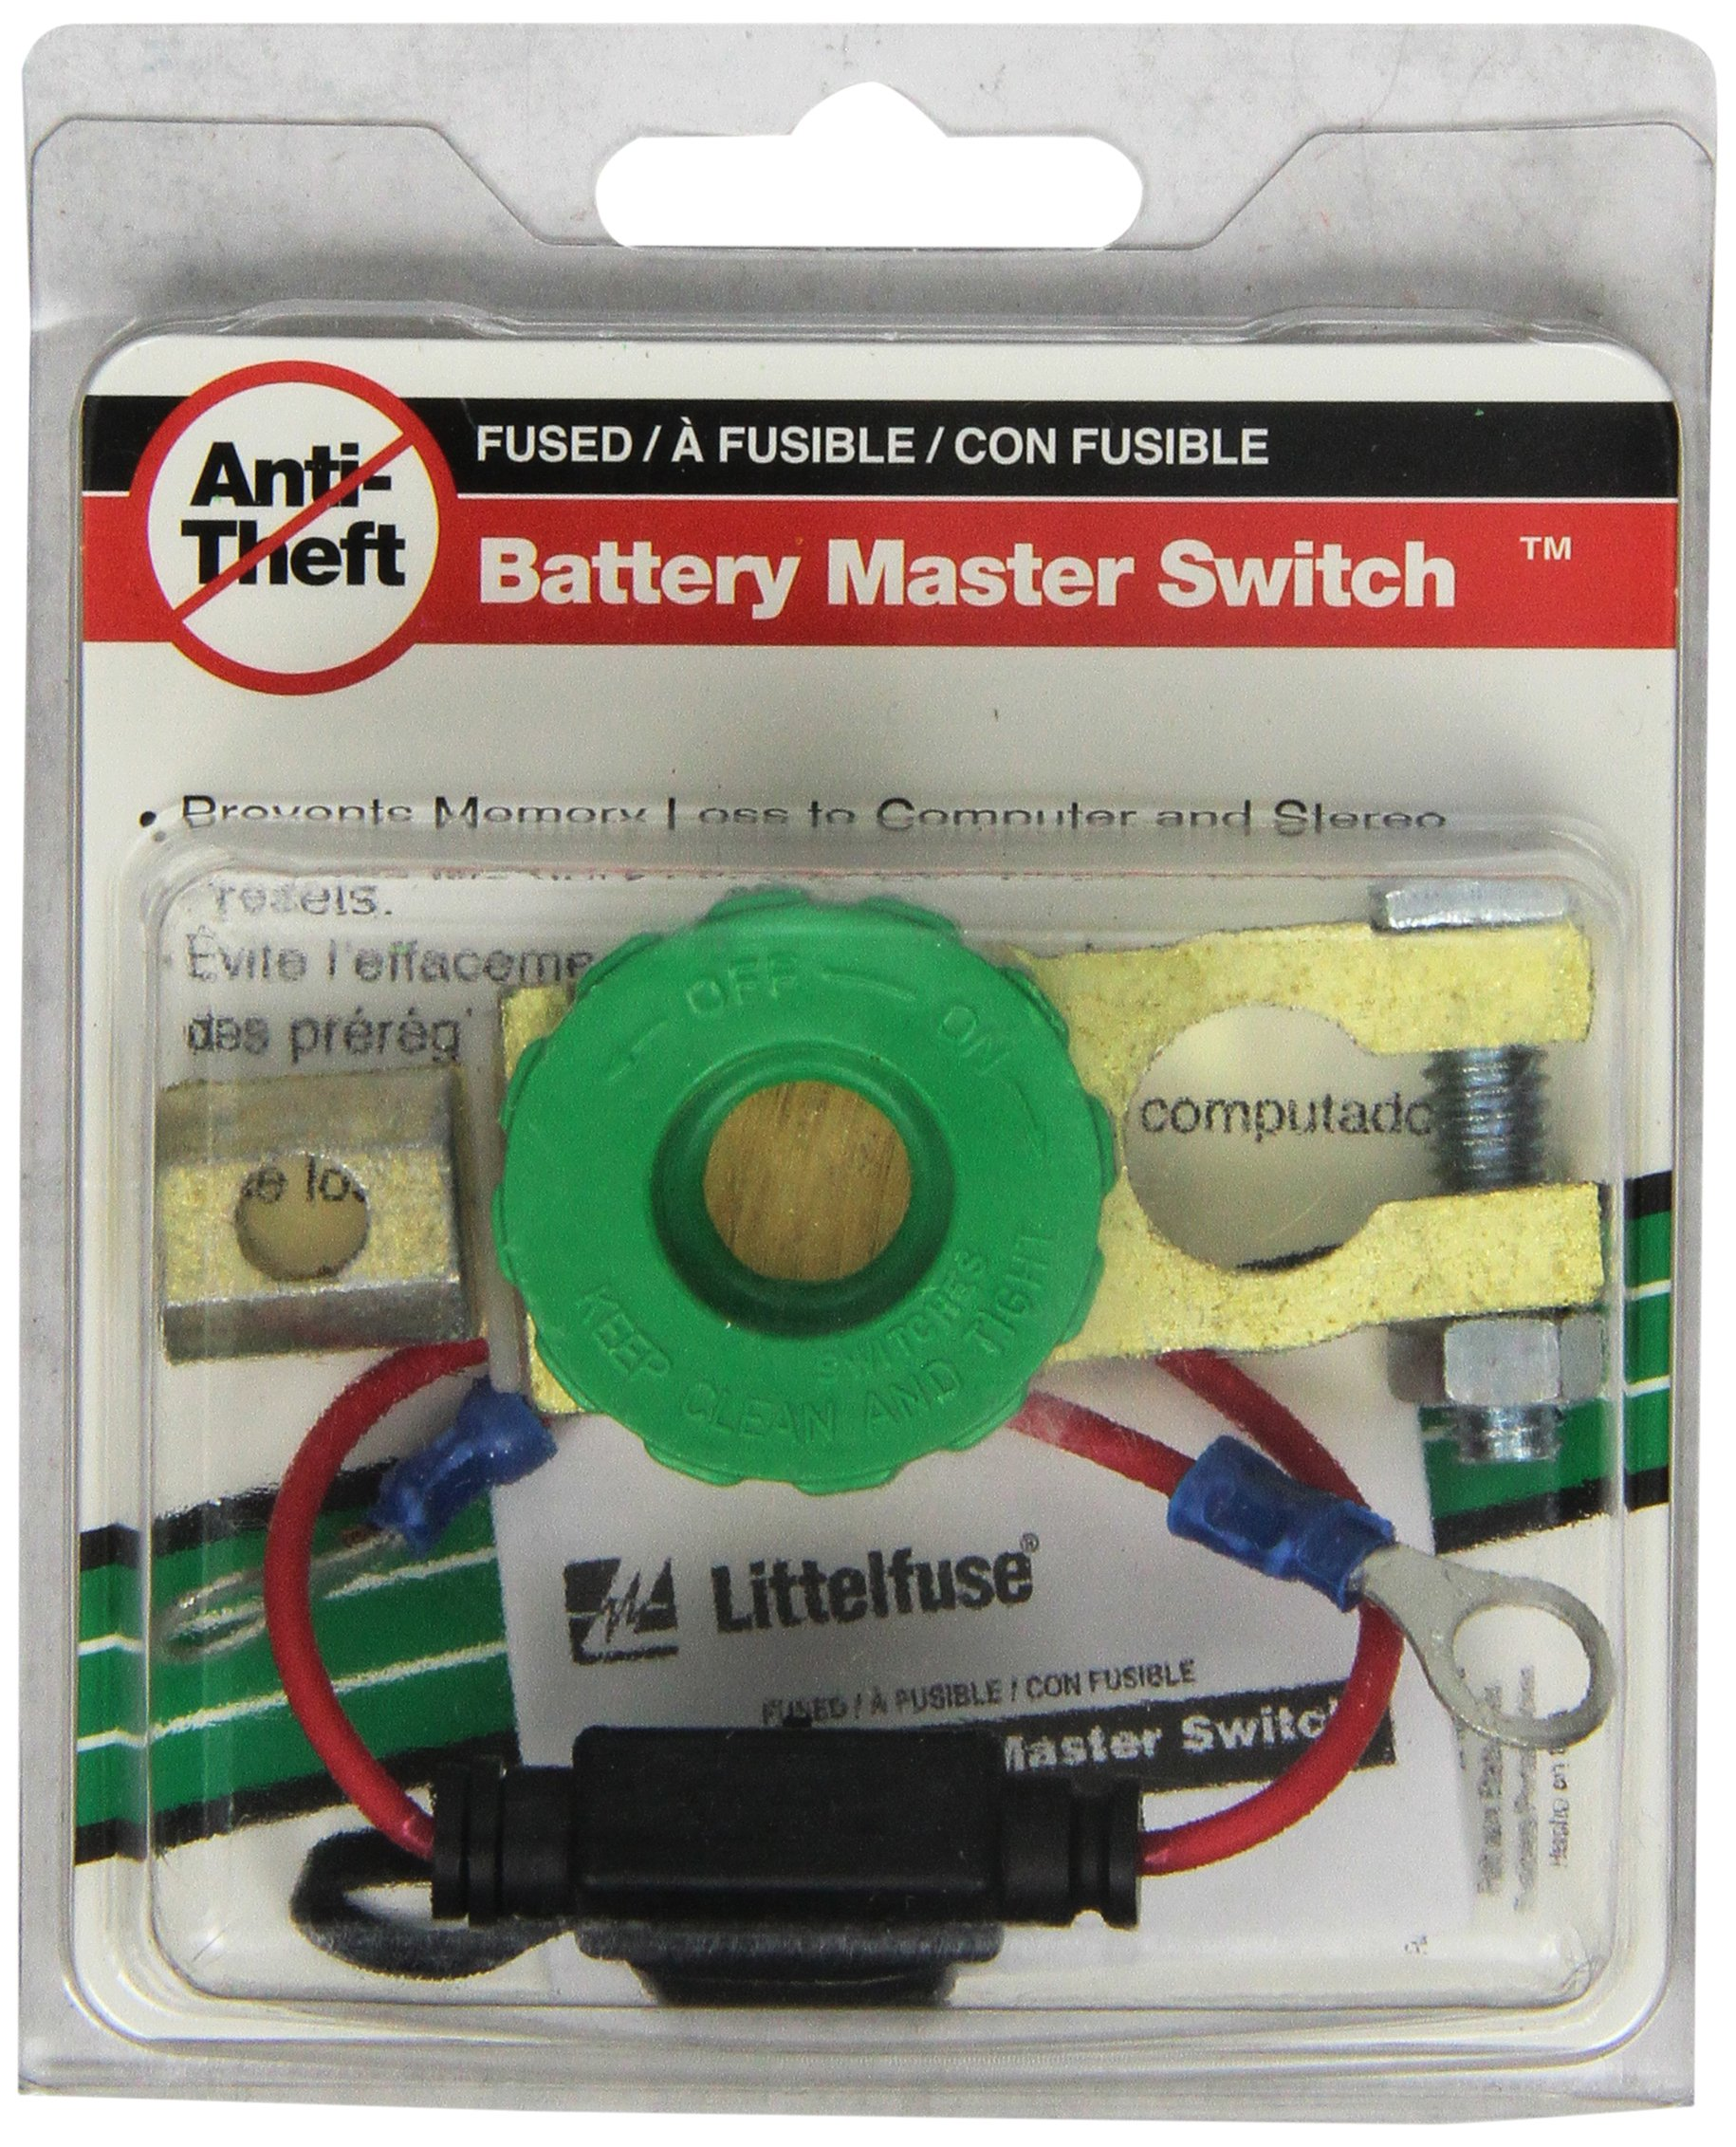 Littelfuse ATD300BP ATD Anti-Theft Battery Master Switch by Littelfuse (Image #2)